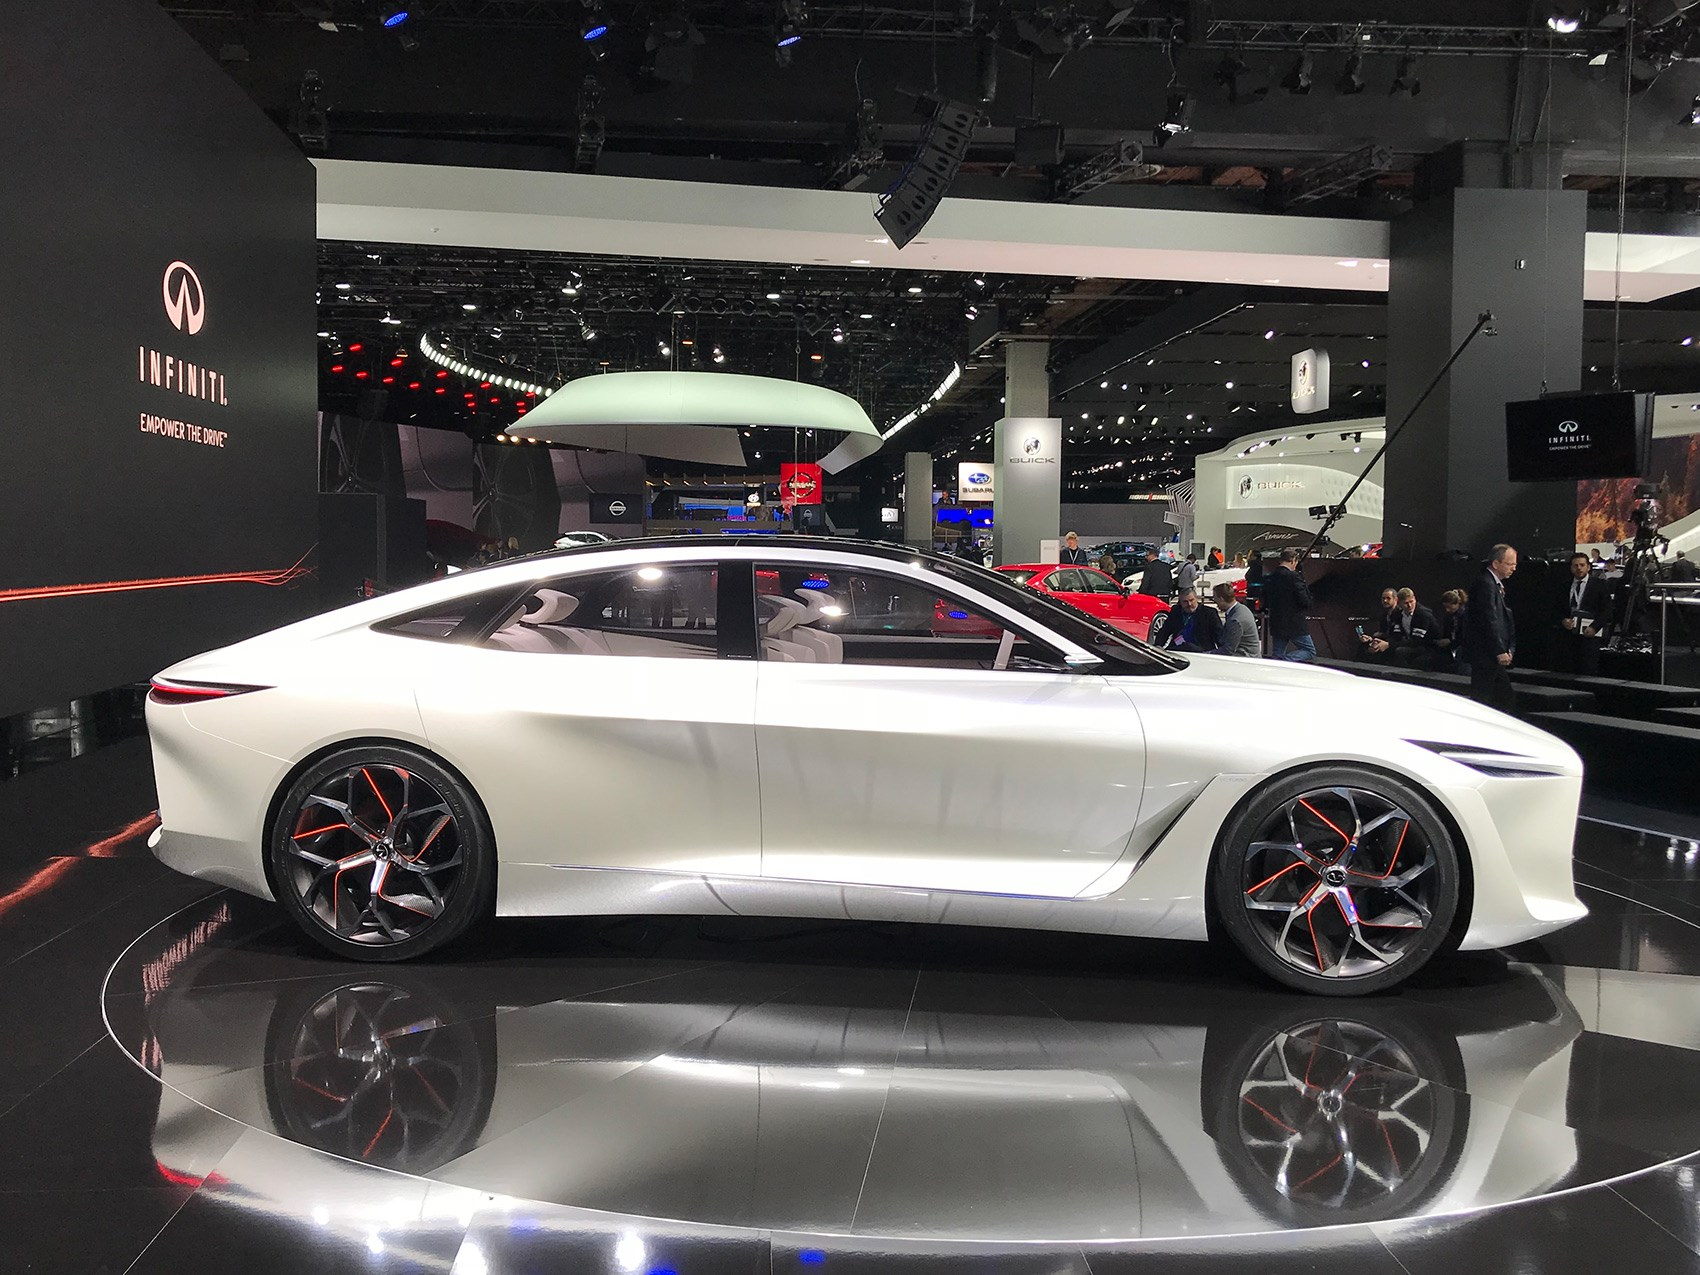 Infiniti infiniti concept car : Infiniti Q Inspiration Concept is a zen wellbeing instructor on ...